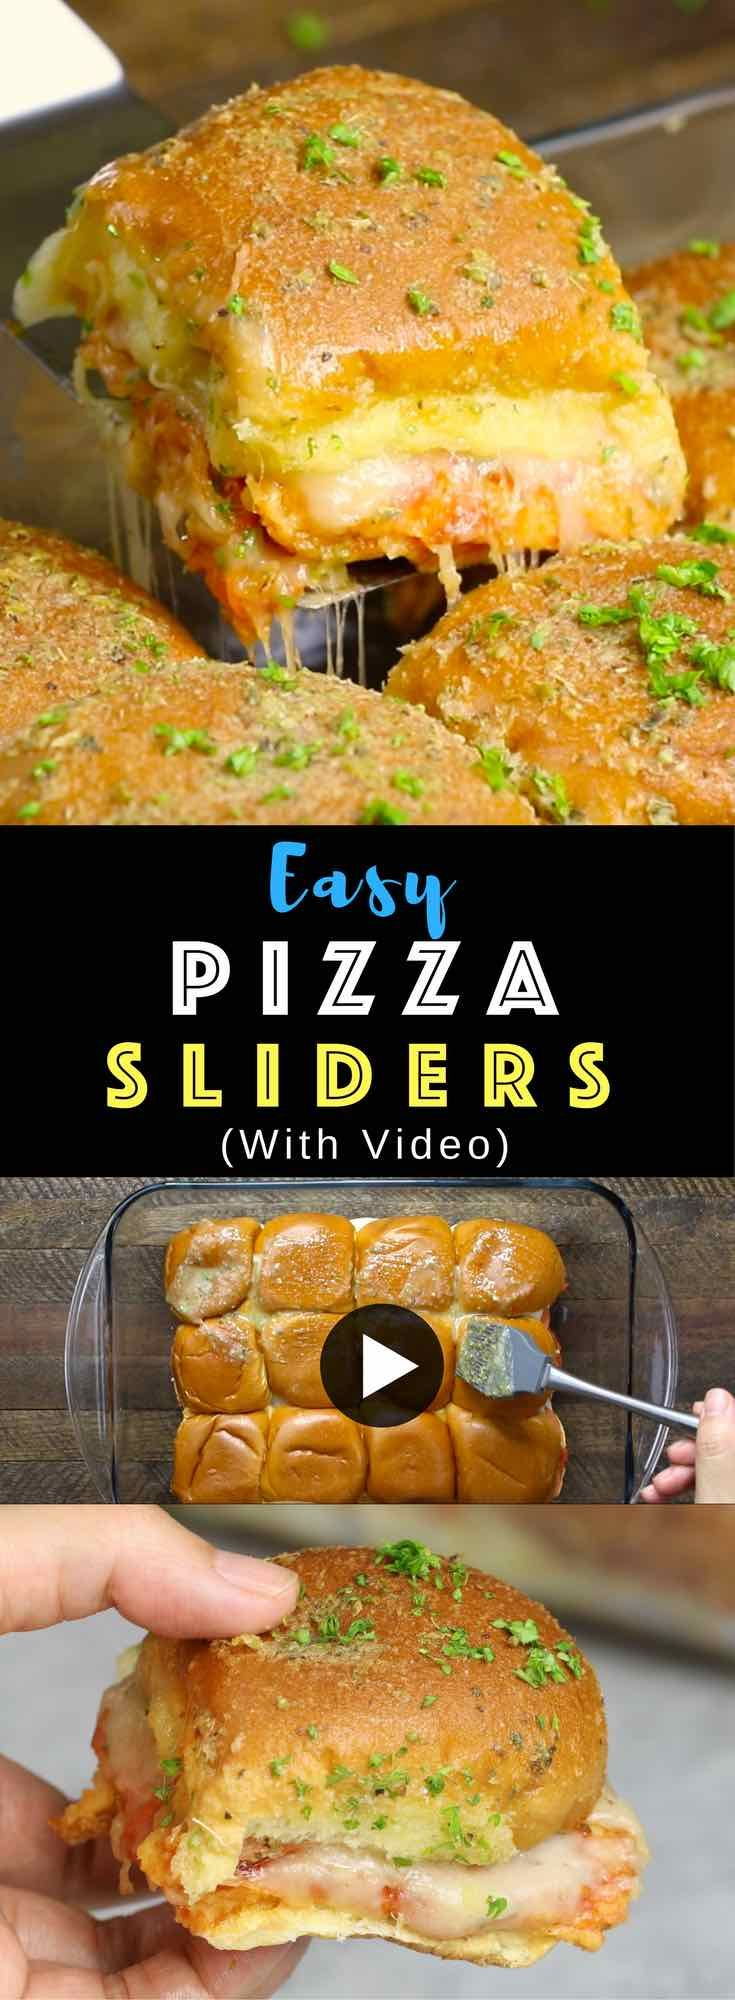 Easy Pepperoni Pizza Sliders – A Make-ahead recipe that's a guaranteed hit with the crispy topping on the bread and cheesy filings inside. All you need is some simple ingredients: Hawaiian rolls, cheese, pepperoni, pasta sauce, butter, herbs and Parmesan. So good! Quick and easy recipe. Make ahead recipe. Great for parties. Video recipe. | Tipbuzz.com